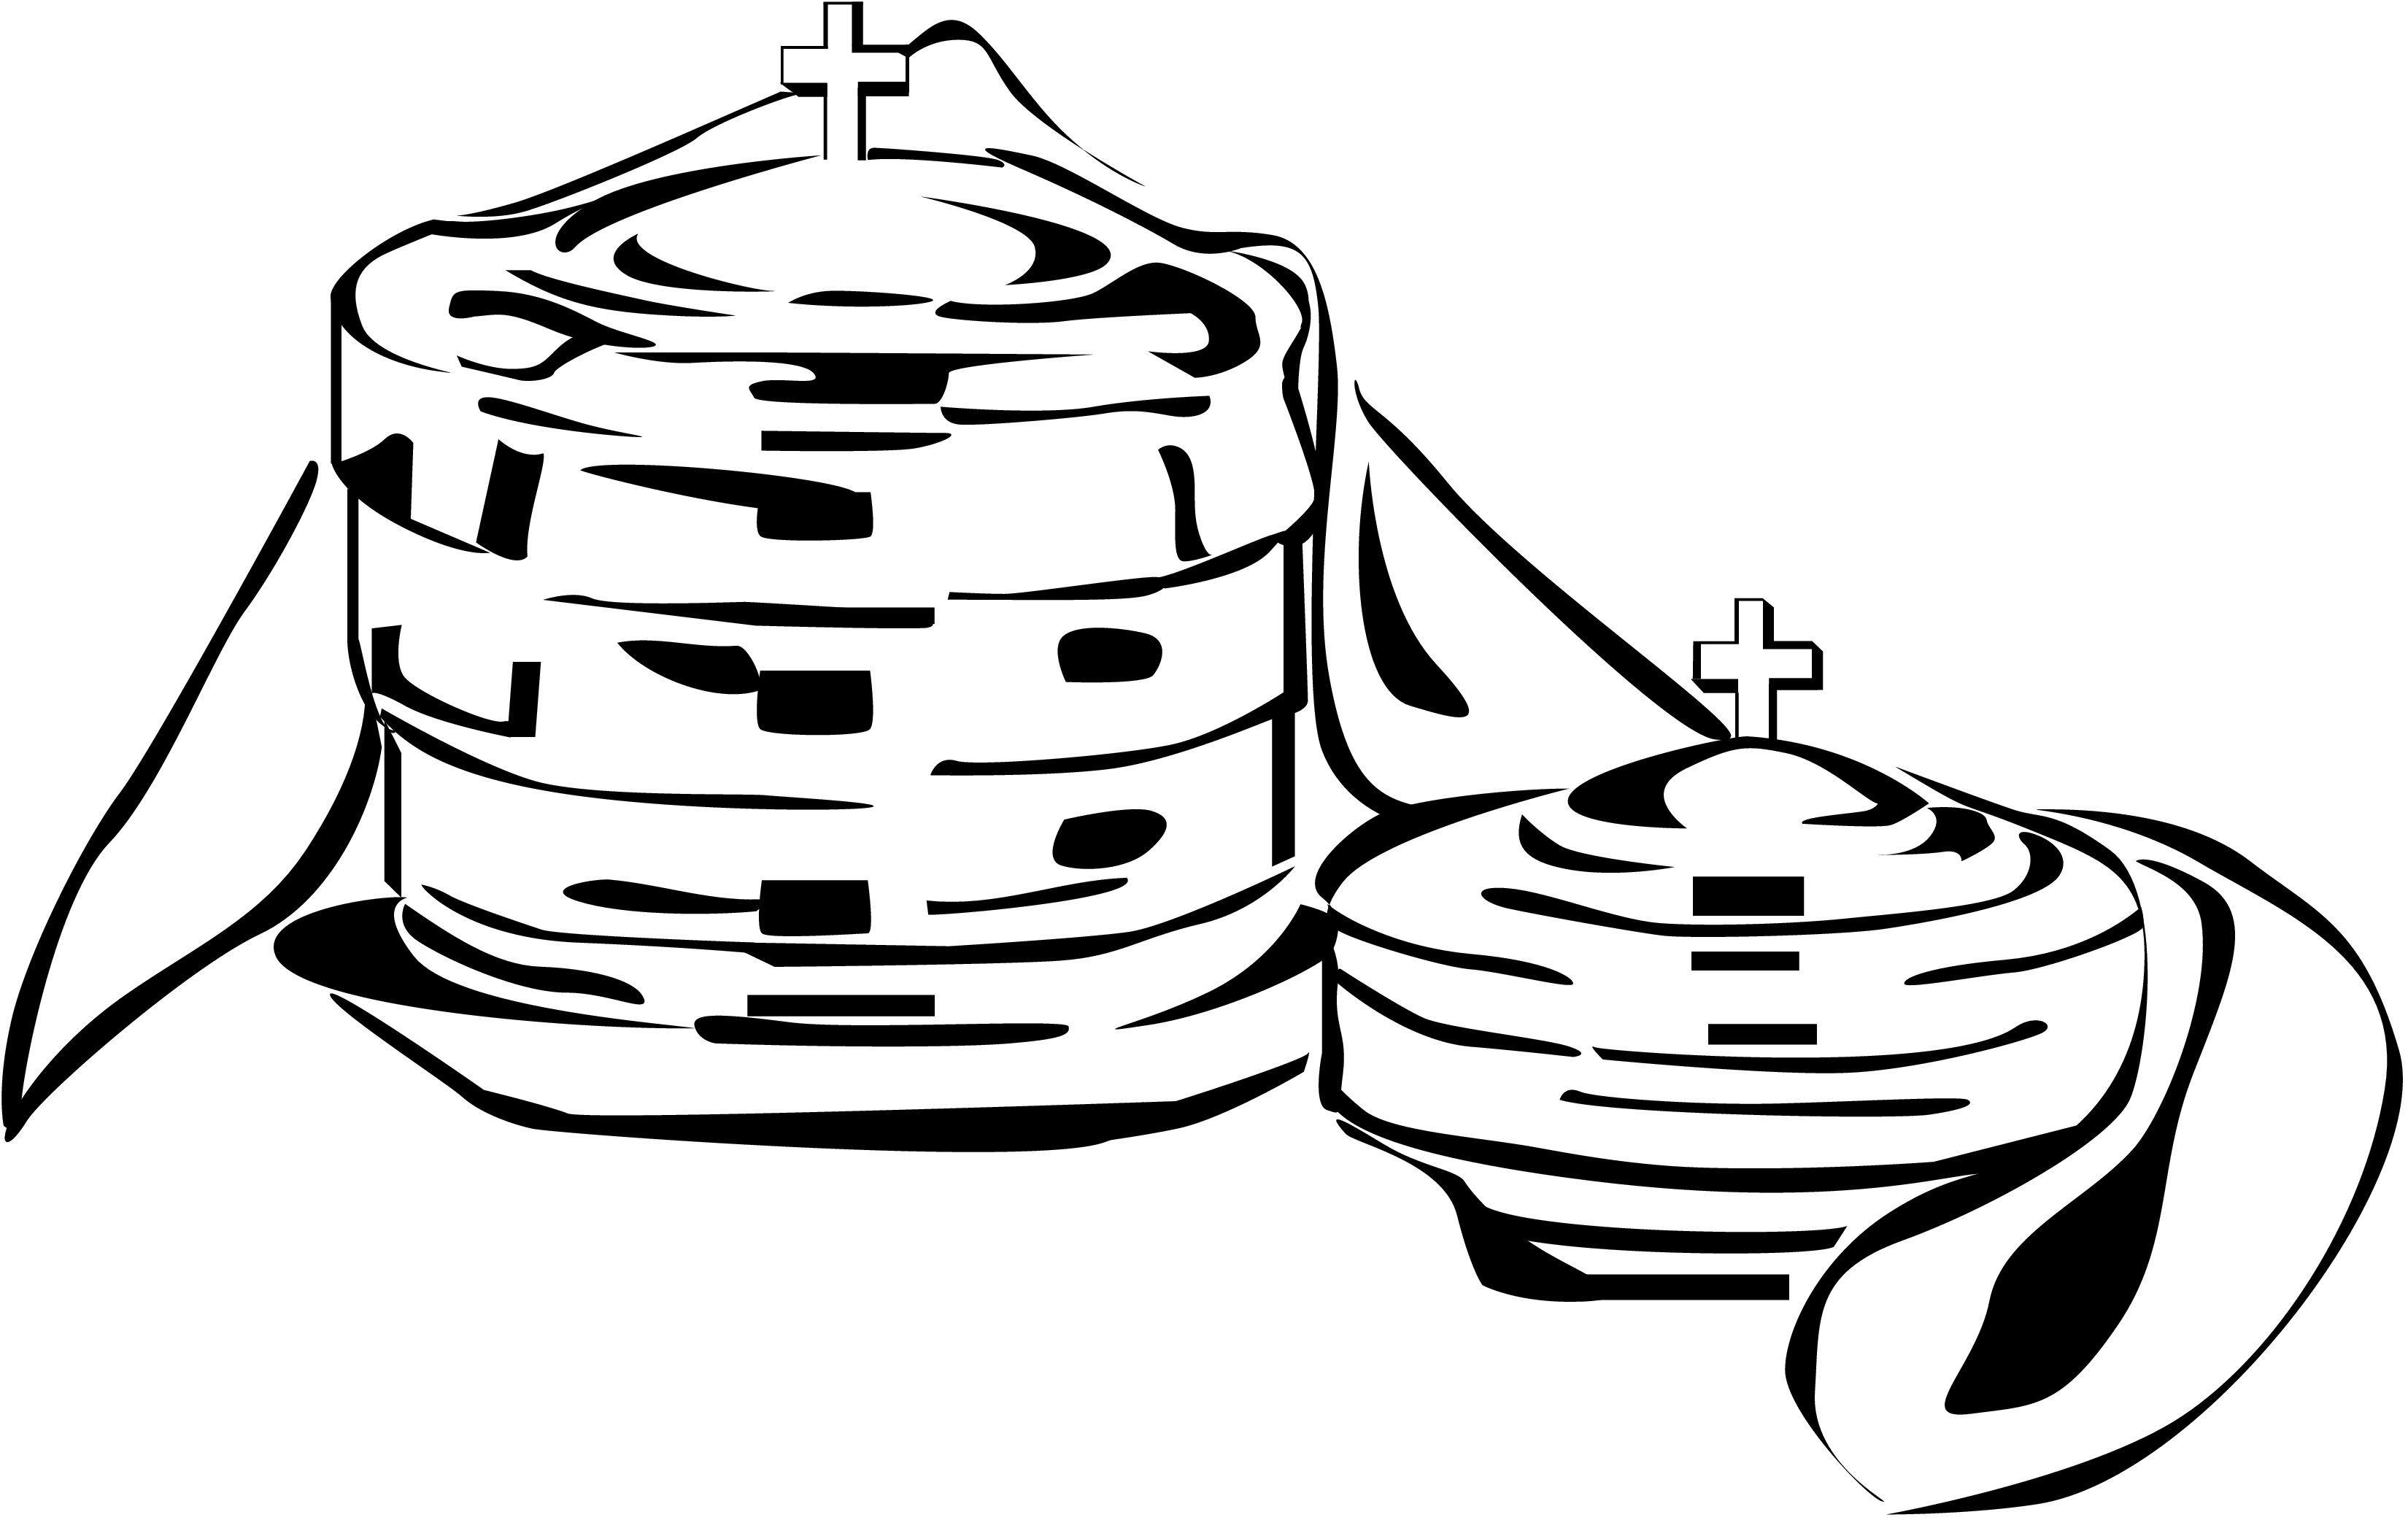 Lords Supper Communion Clip Art N4 free image